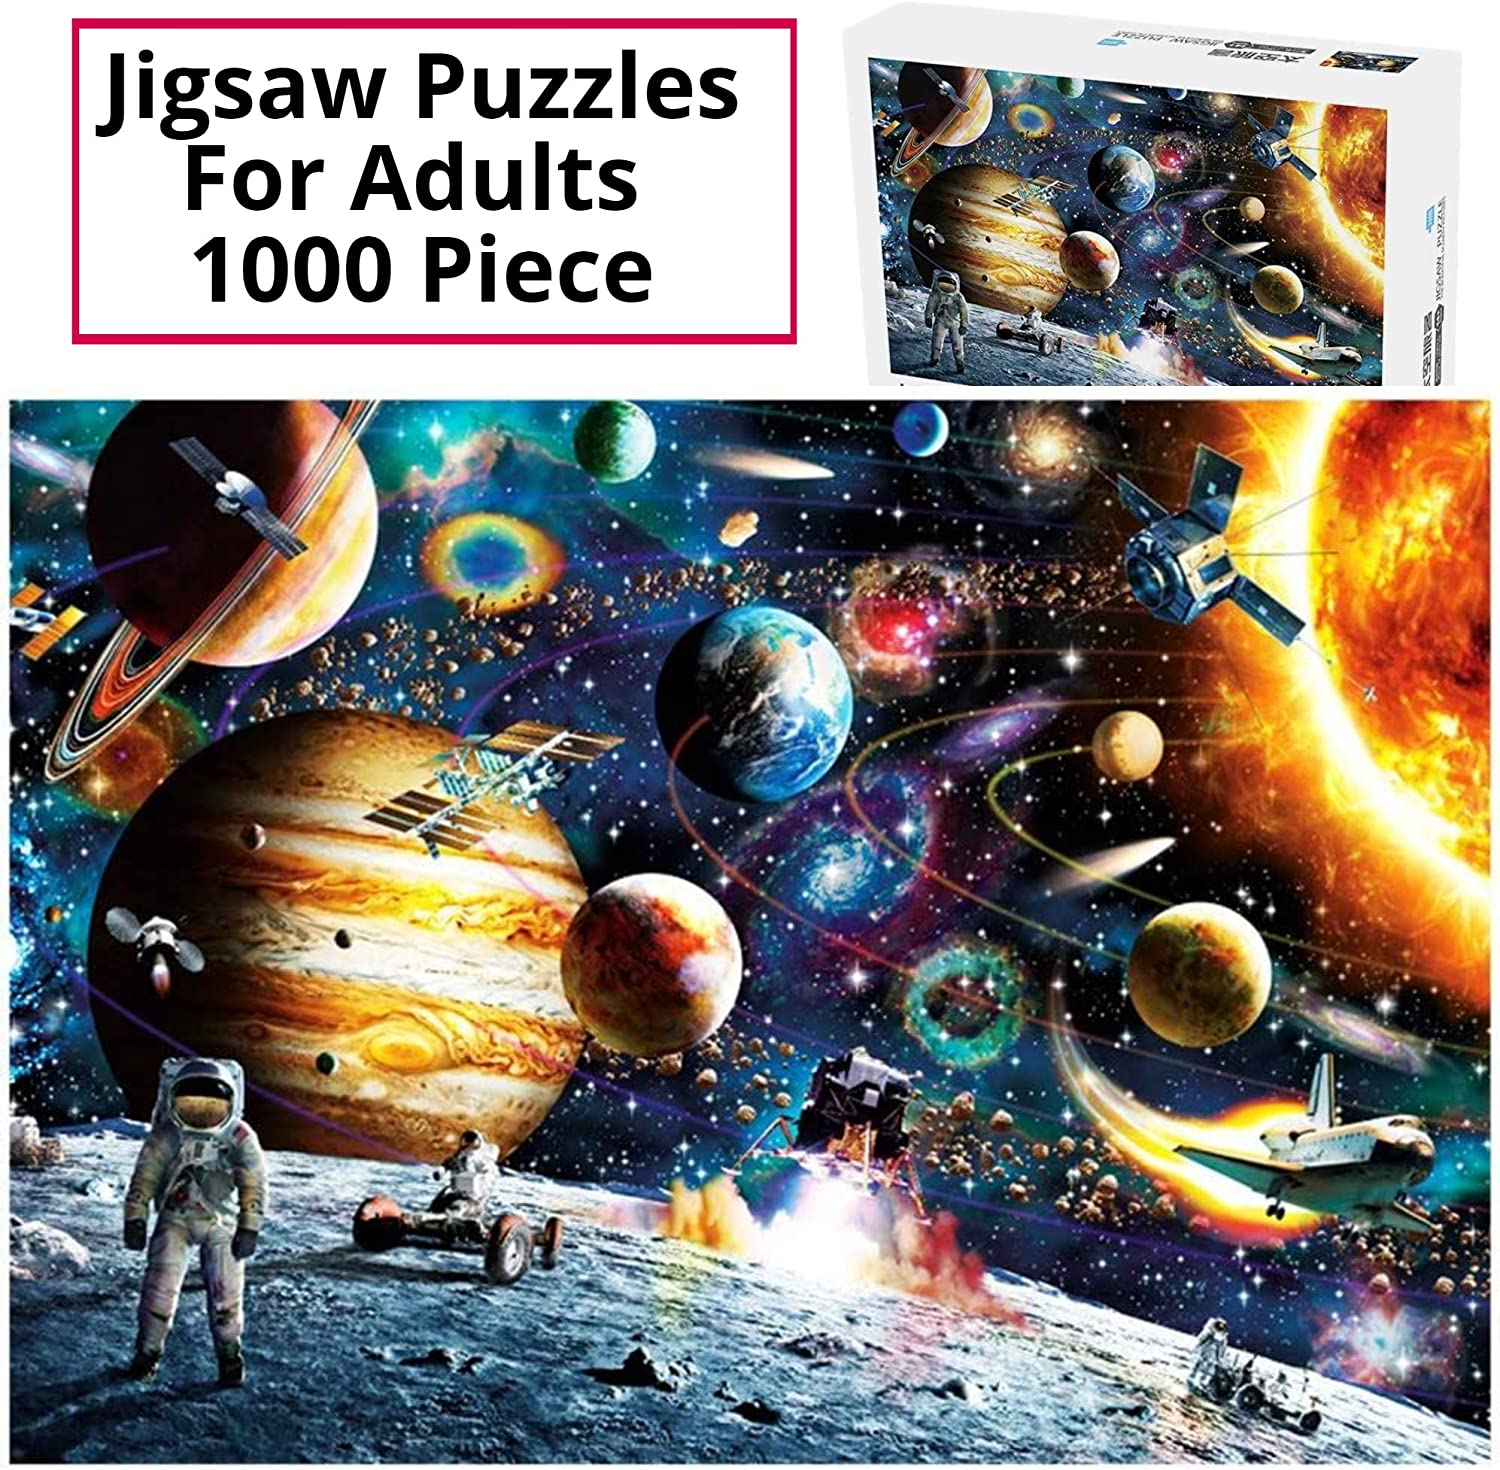 Jigsaw Puzzles for Adults 1000 Piece - Natural Material, Non-Toxic, for Adult, Kids, Children, Boy, Teens, Grandparents, Senior Adults, Elderly Adults, Astronomy Lovers Men